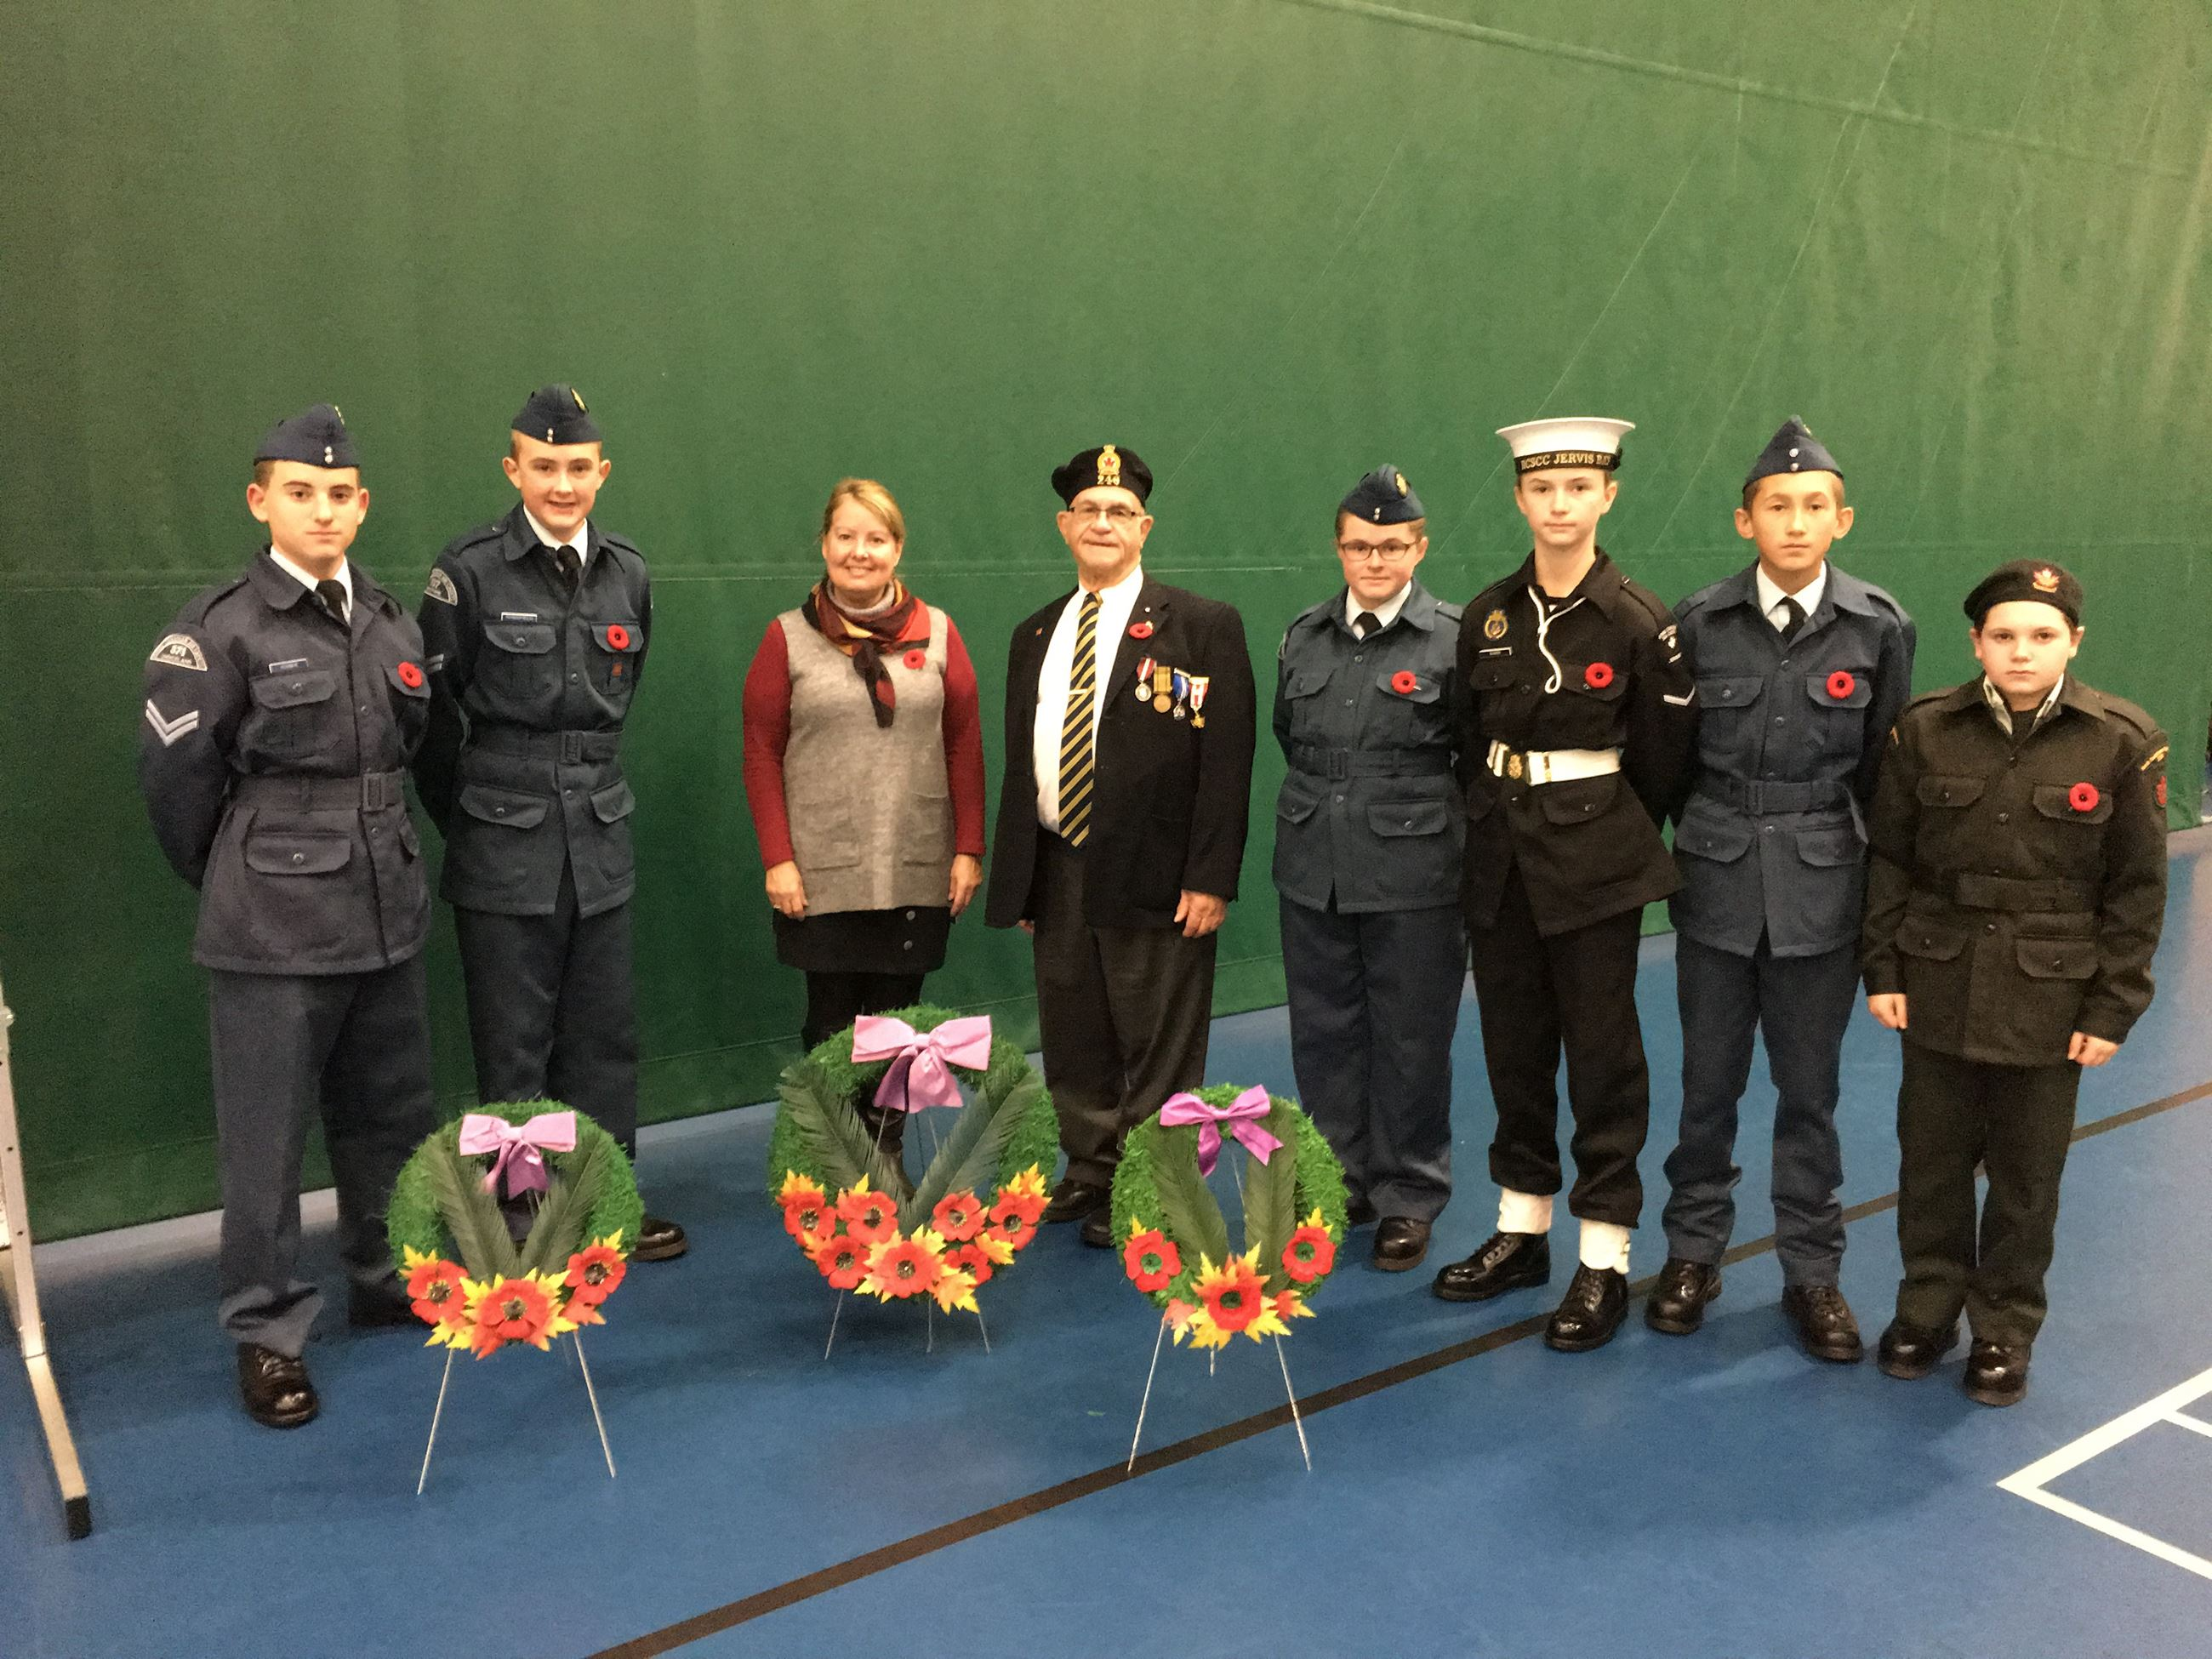 Young cadets in front of wreaths